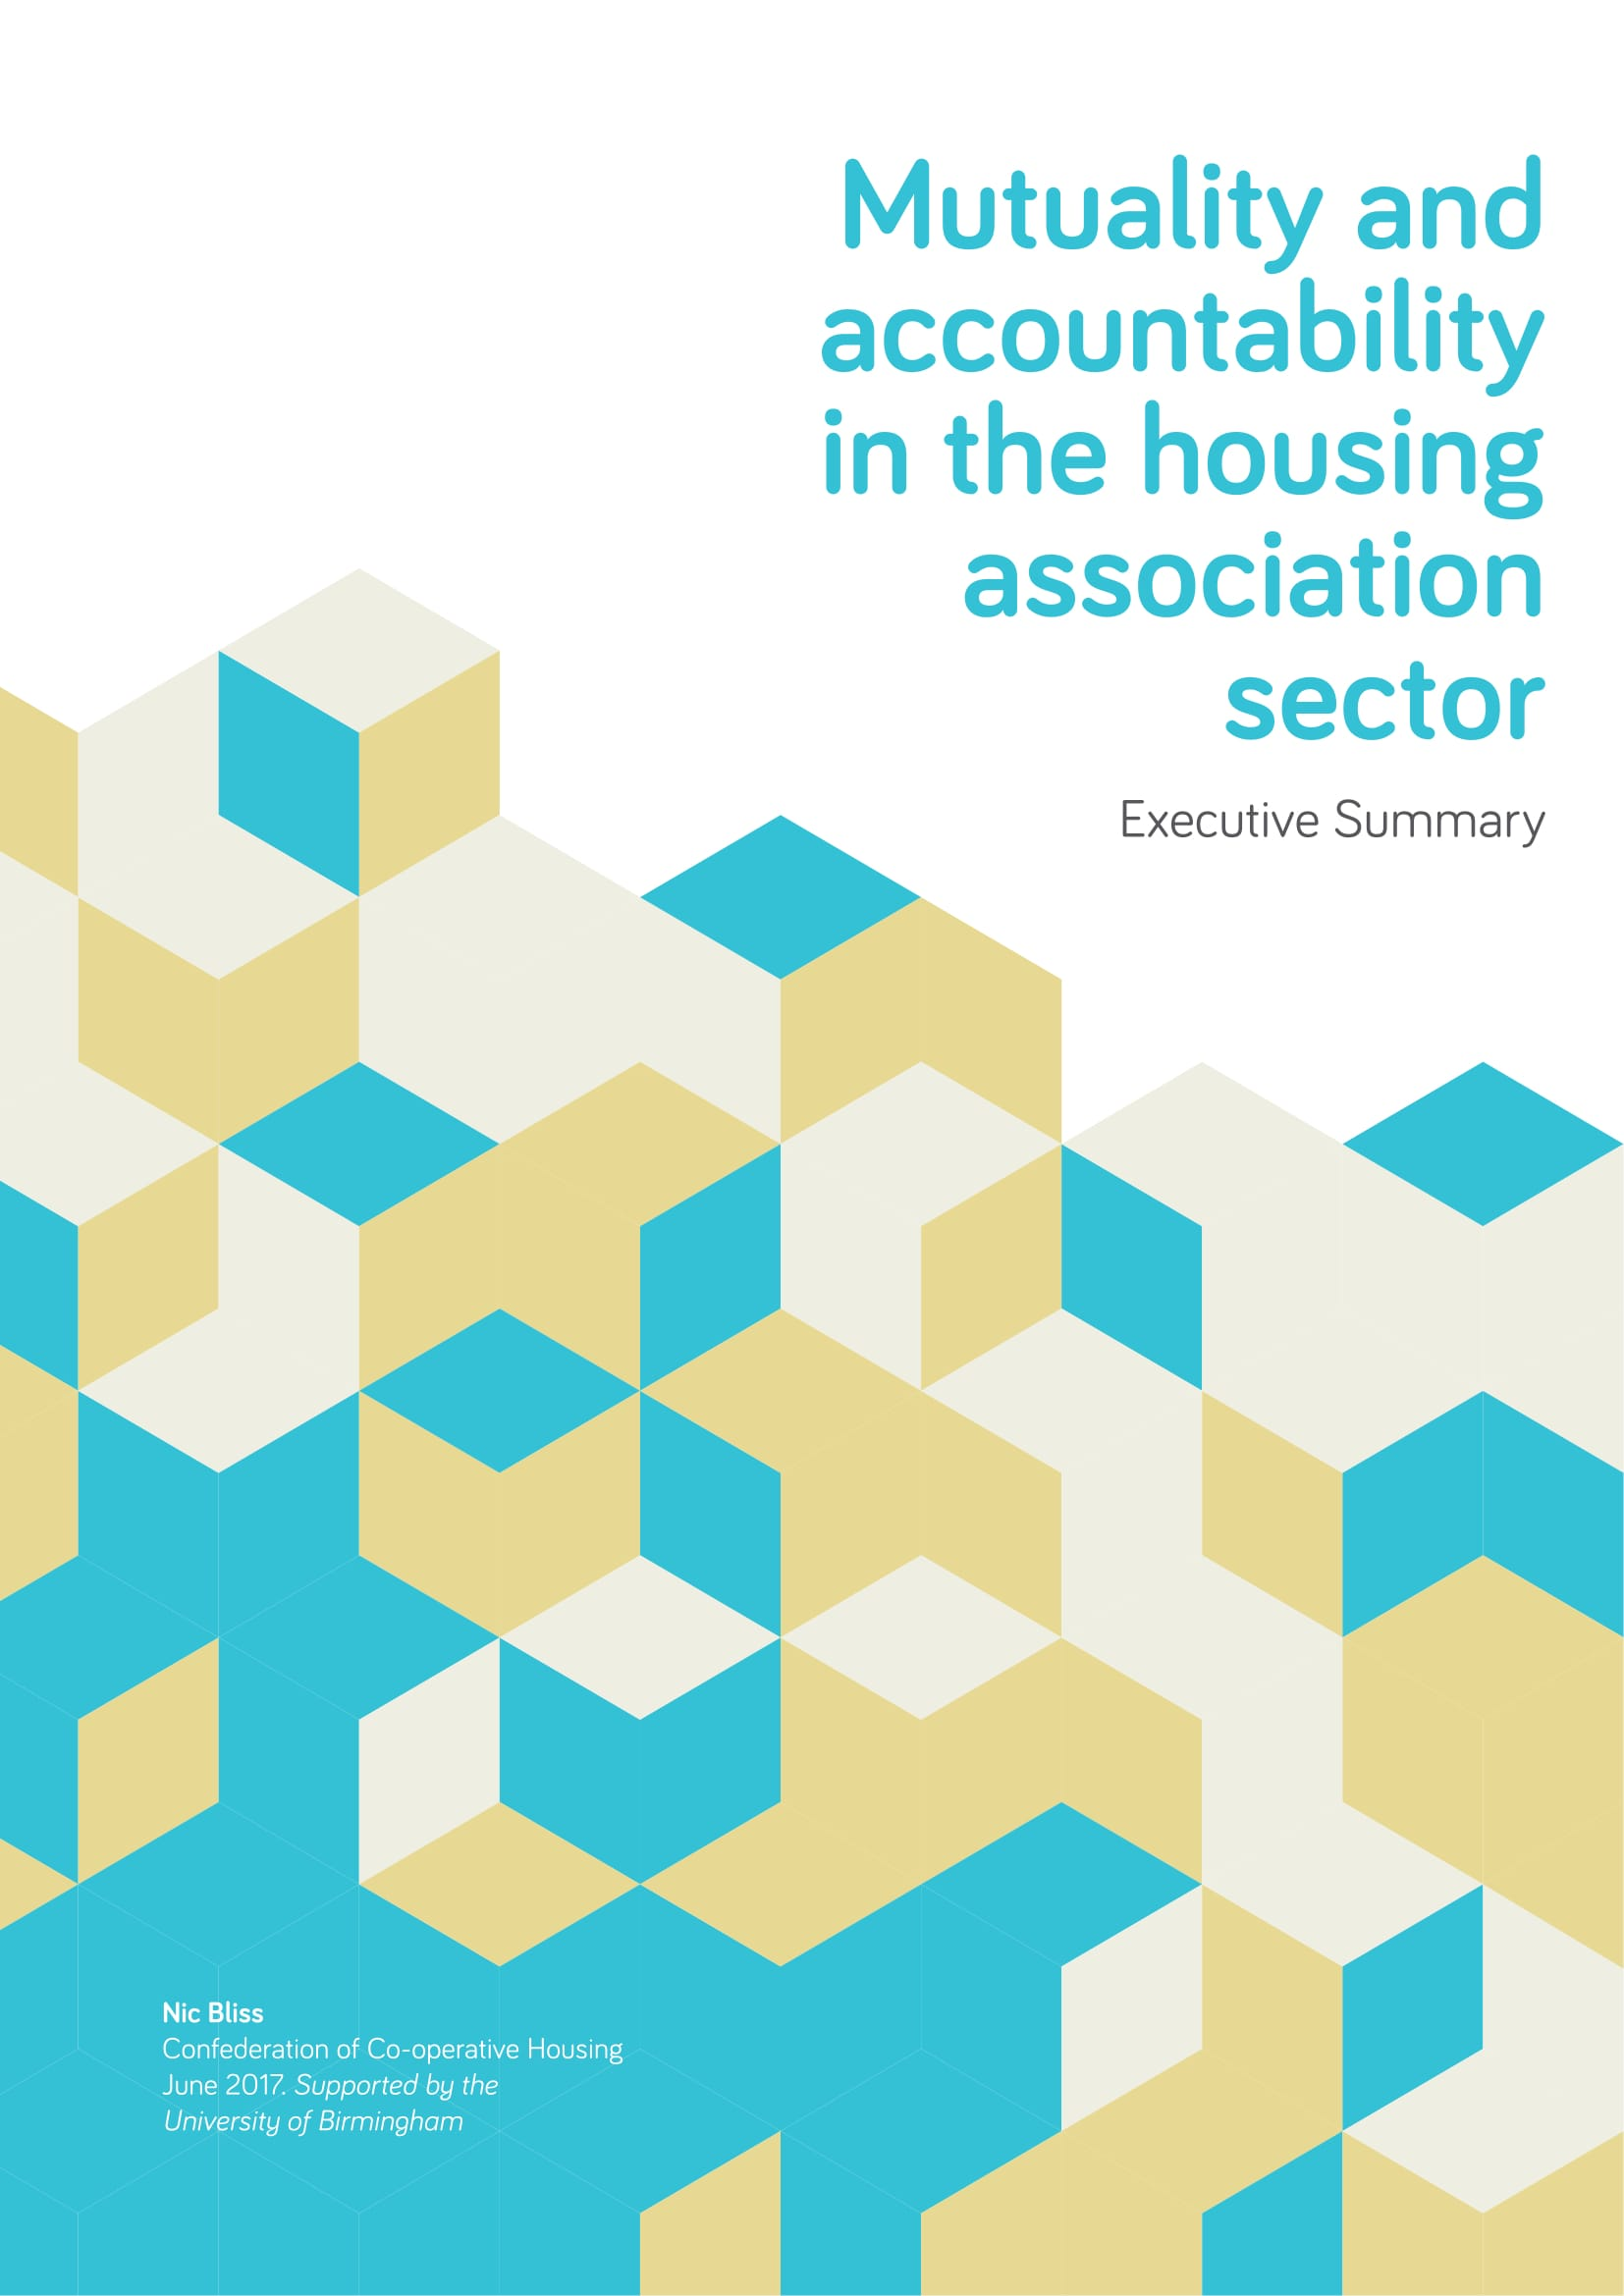 Mutuality and accountability in the housing association sector